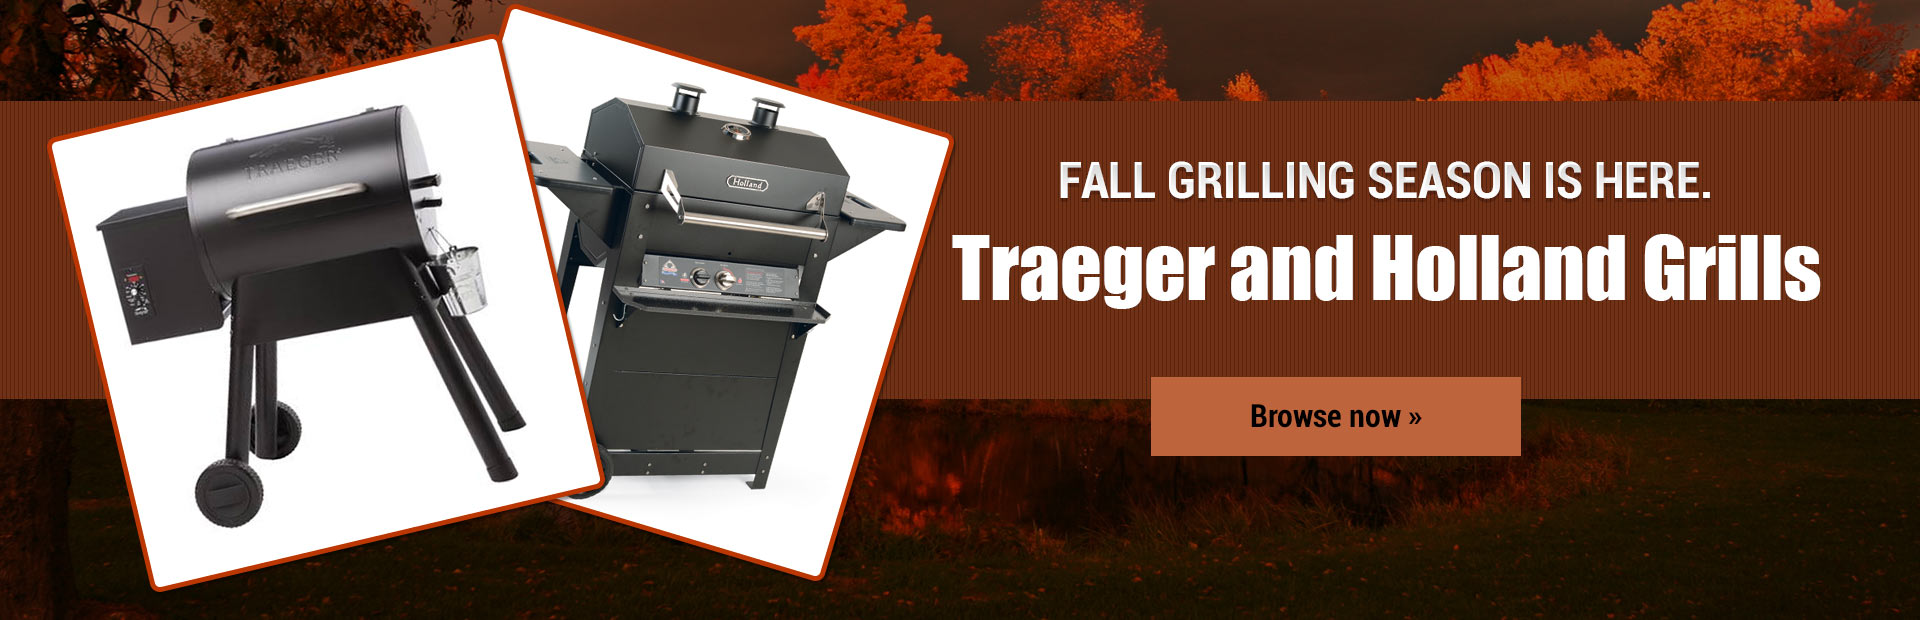 Traeger and Holland Grills: Click here for details.